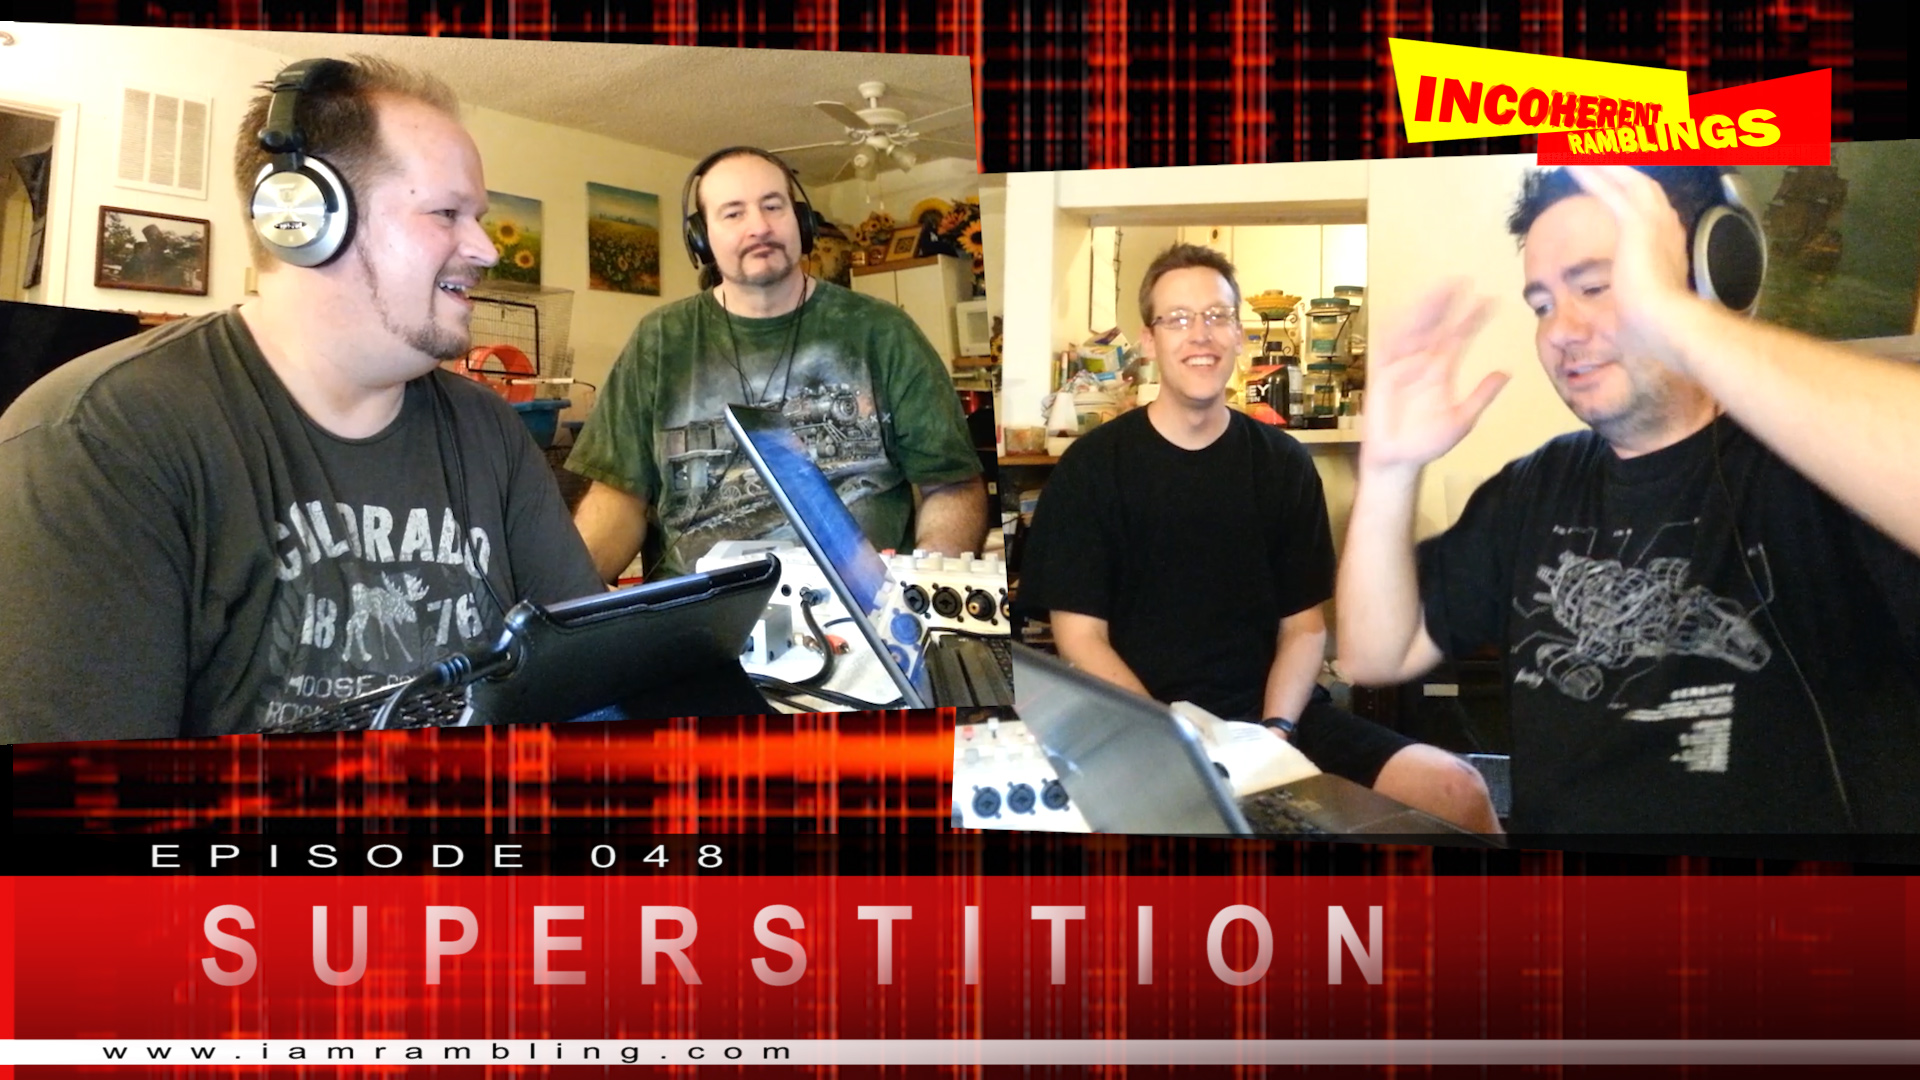 IR Video Episode 048 – Superstition